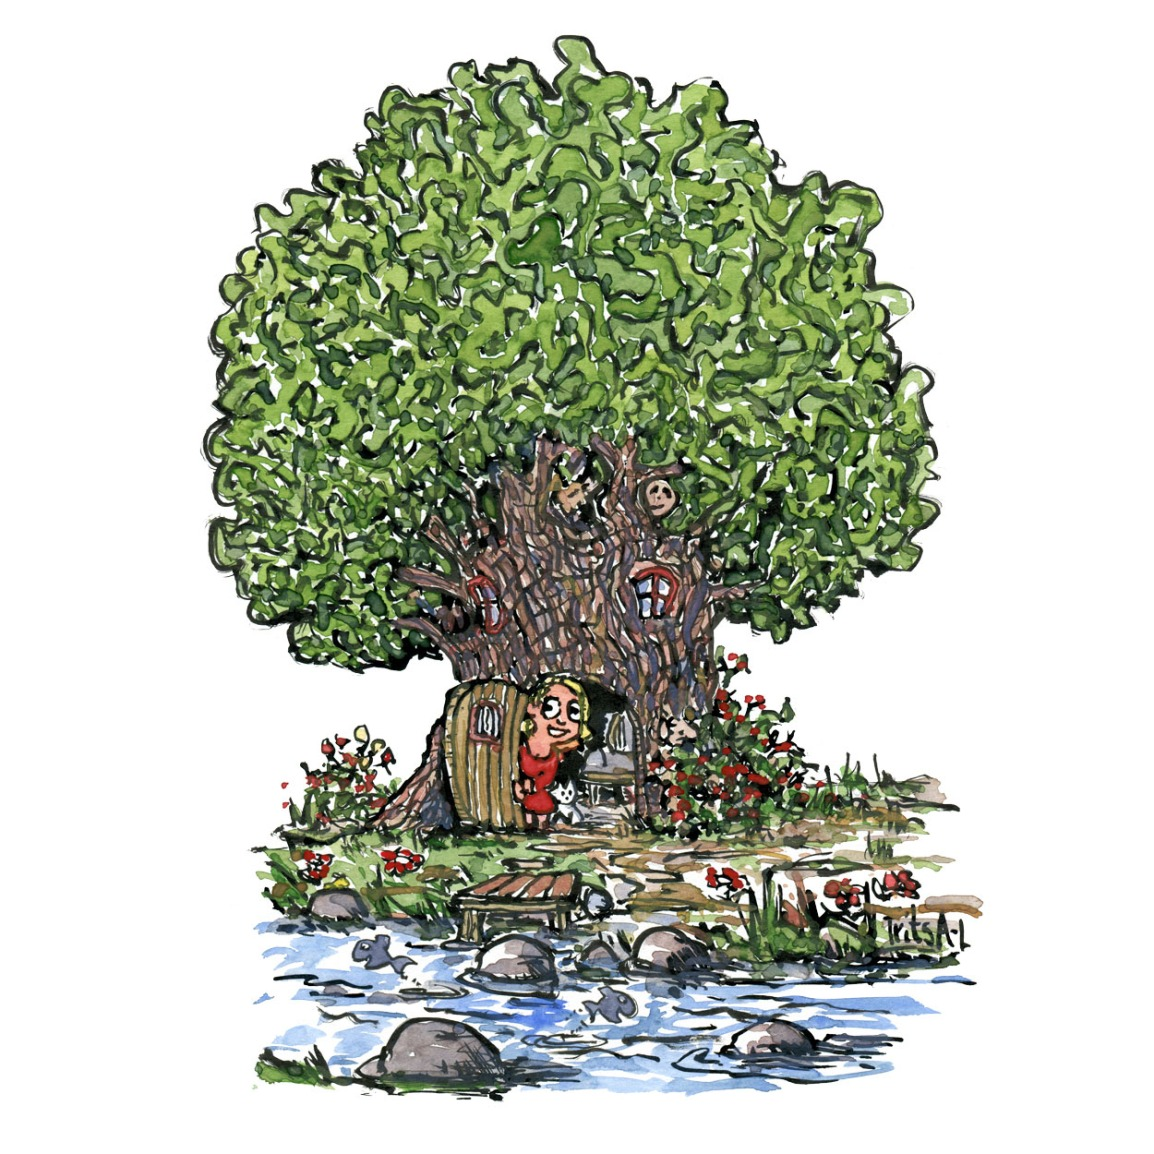 Drawing of a woman opening the door to her home in a tree in front of a stream. Illustration by Frits Ahlefeldt